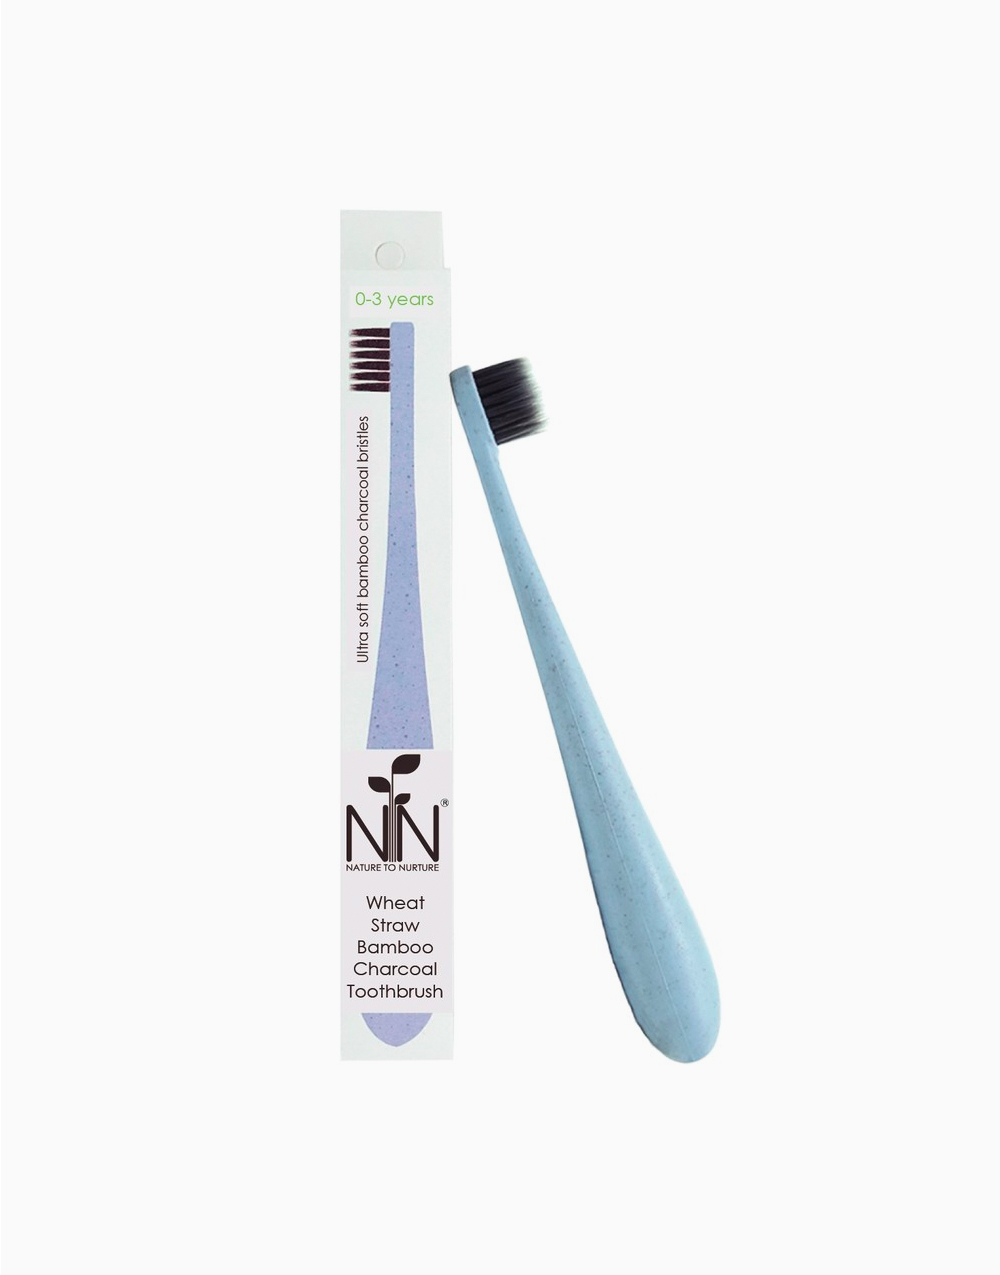 Wheat Straw Bamboo Charcoal Toothbrush, 0 months - 3 years by Nature to Nurture | Blue